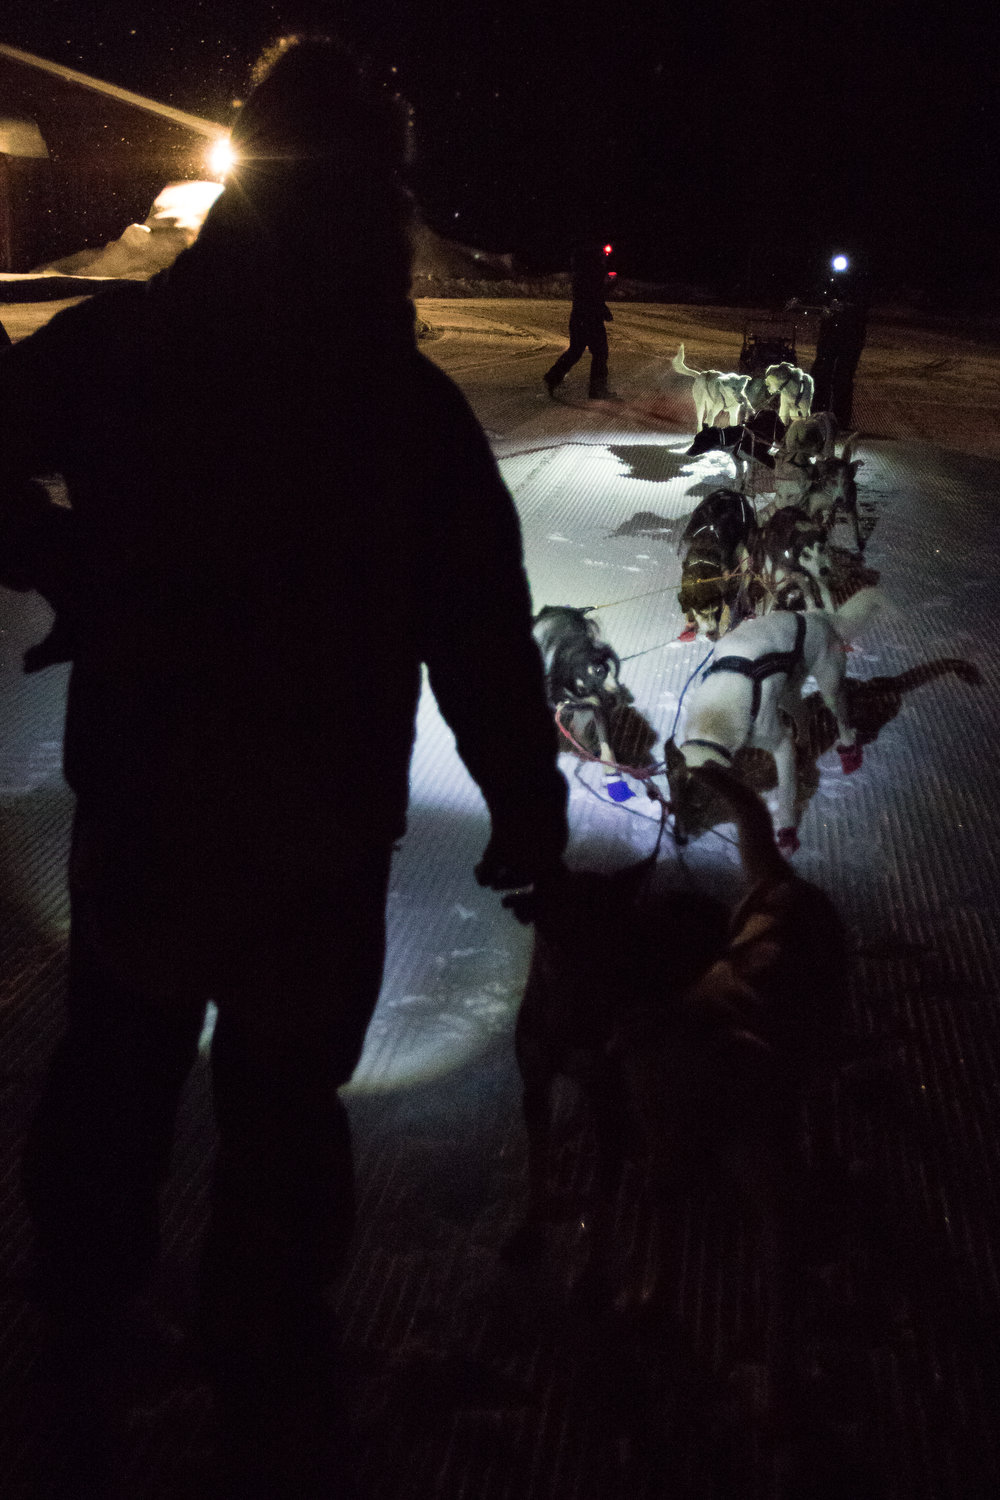 A handler assists a musher as his team makes its way into checkpoint one late Saturday night.